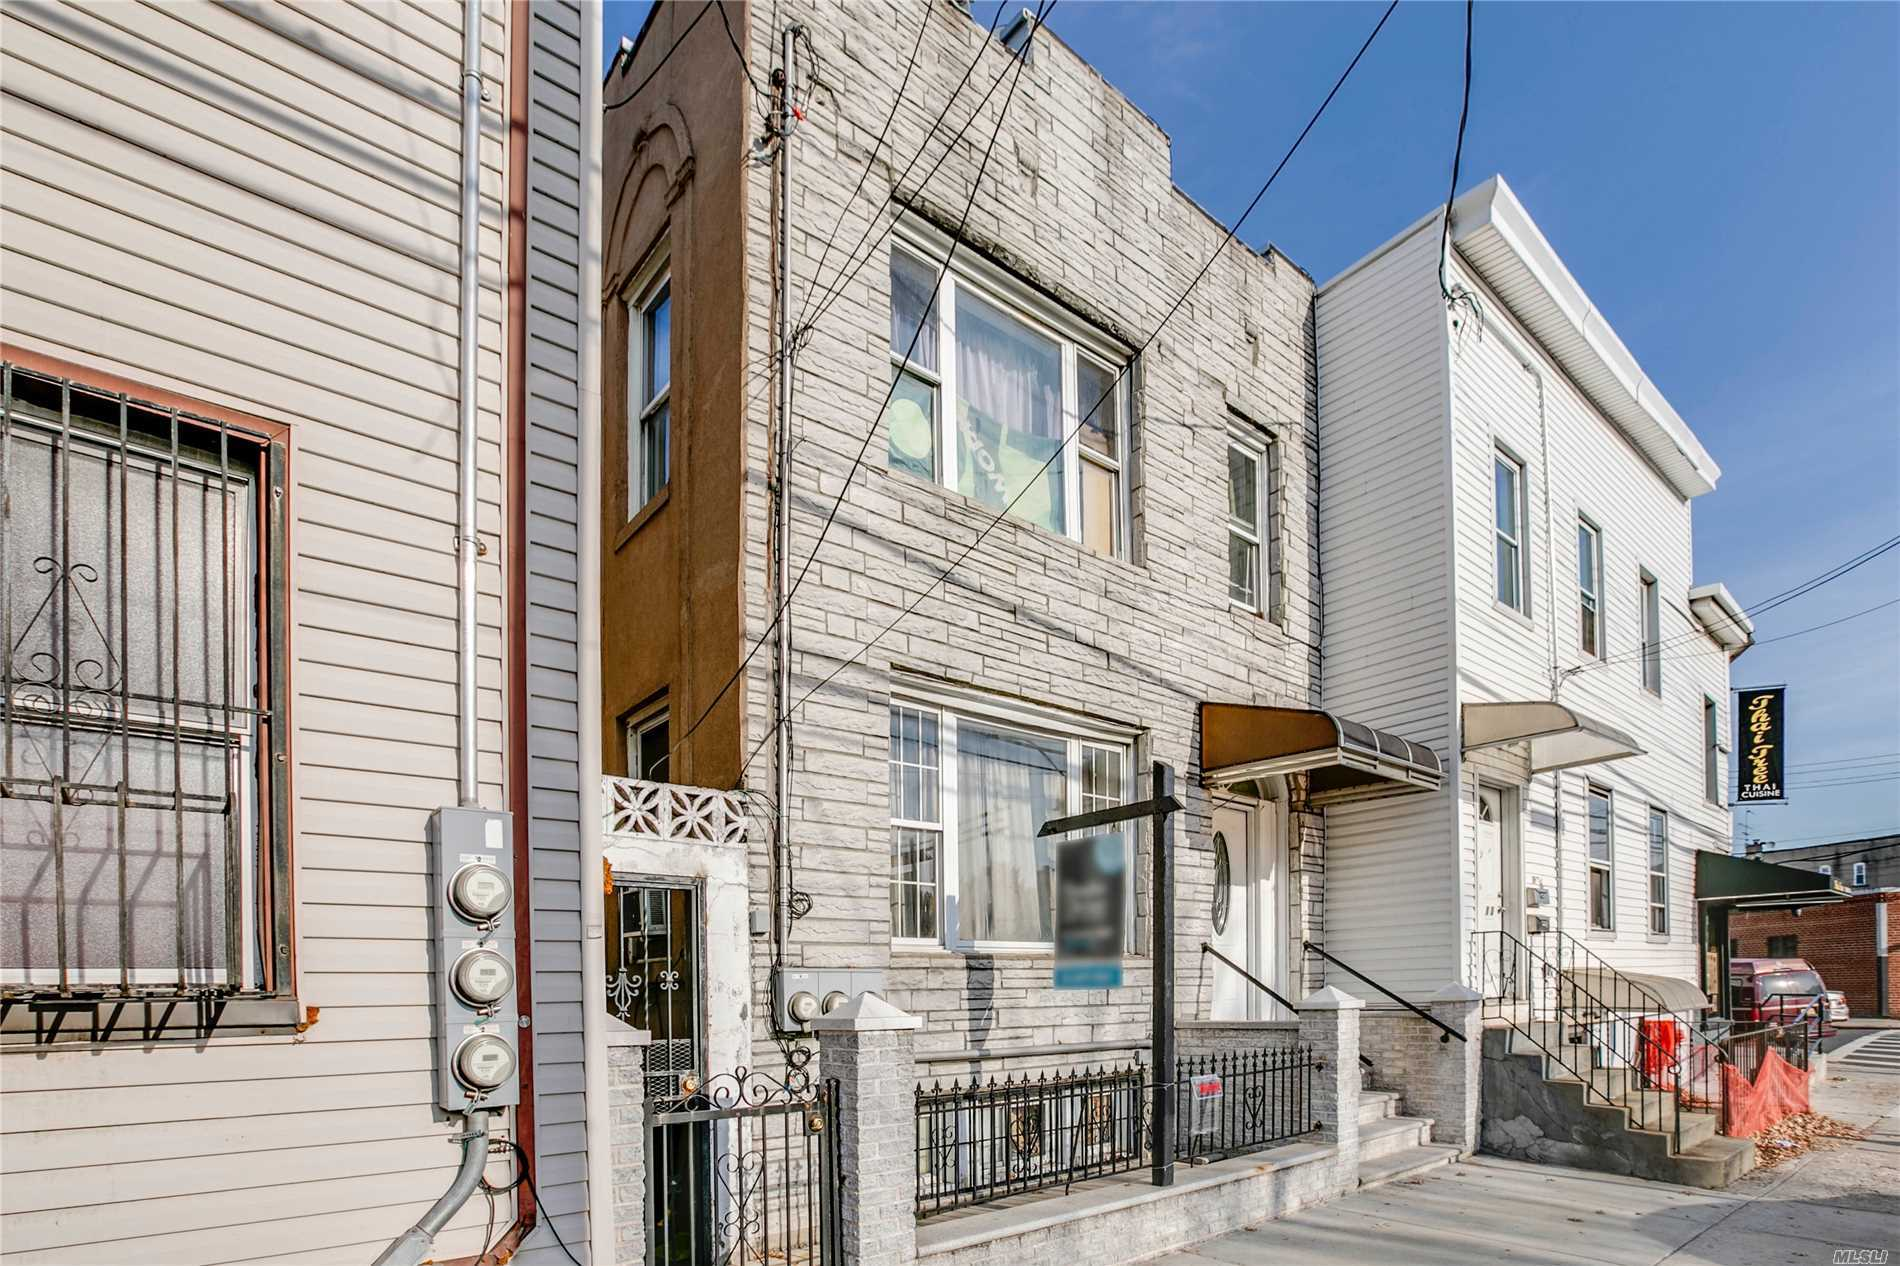 Great Condition, Semi-Detached Frame Home On The Borderline Of Long Island City And Sunnyside! A Rare Opportunity To Purchase A Two Family Home In A Prime Location! 20X61 Building Size, Full Finished Basement, Property Is In Need Of Minor Repairs. Partially Tenant Occupied But Can Be Delivered Vacant.